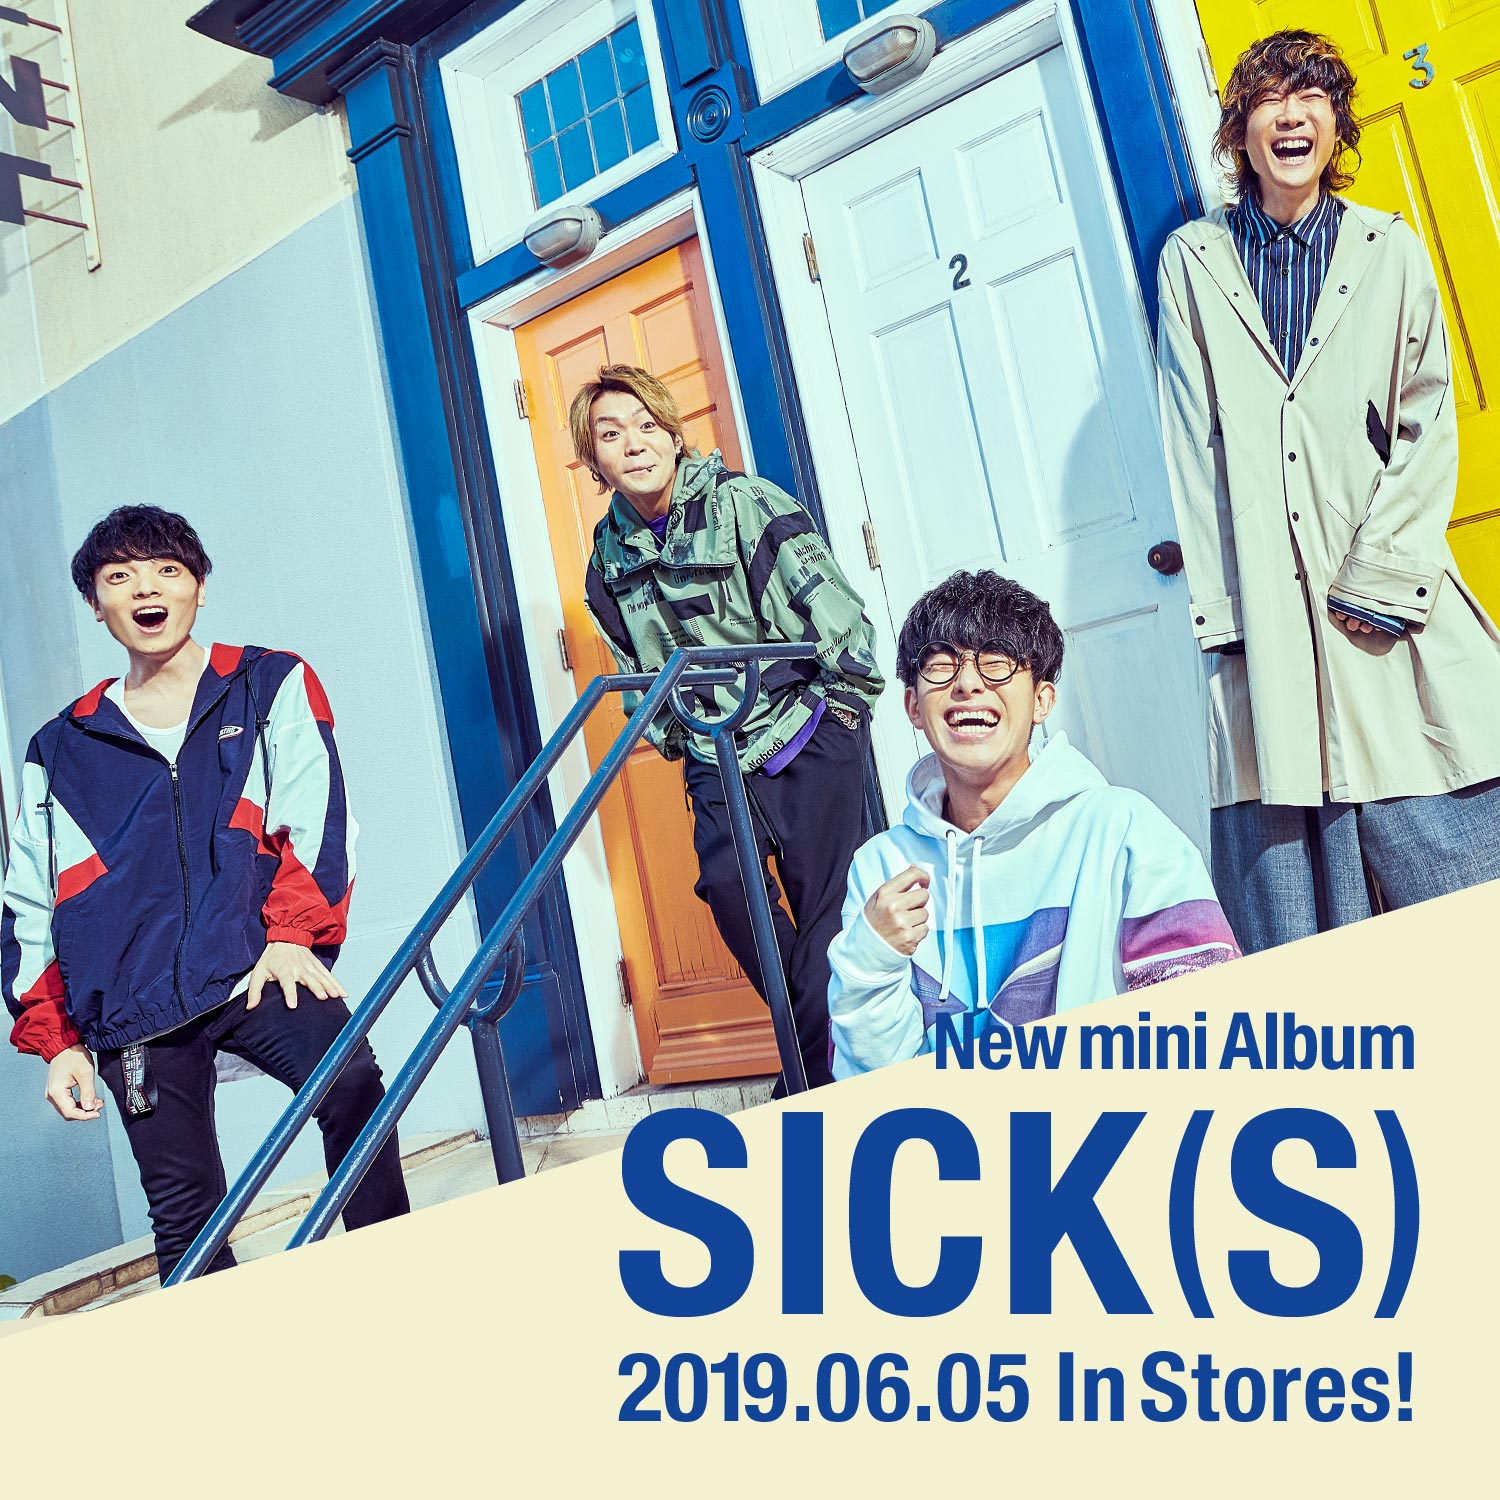 New mini Album「SICK(S)」06.05 Release